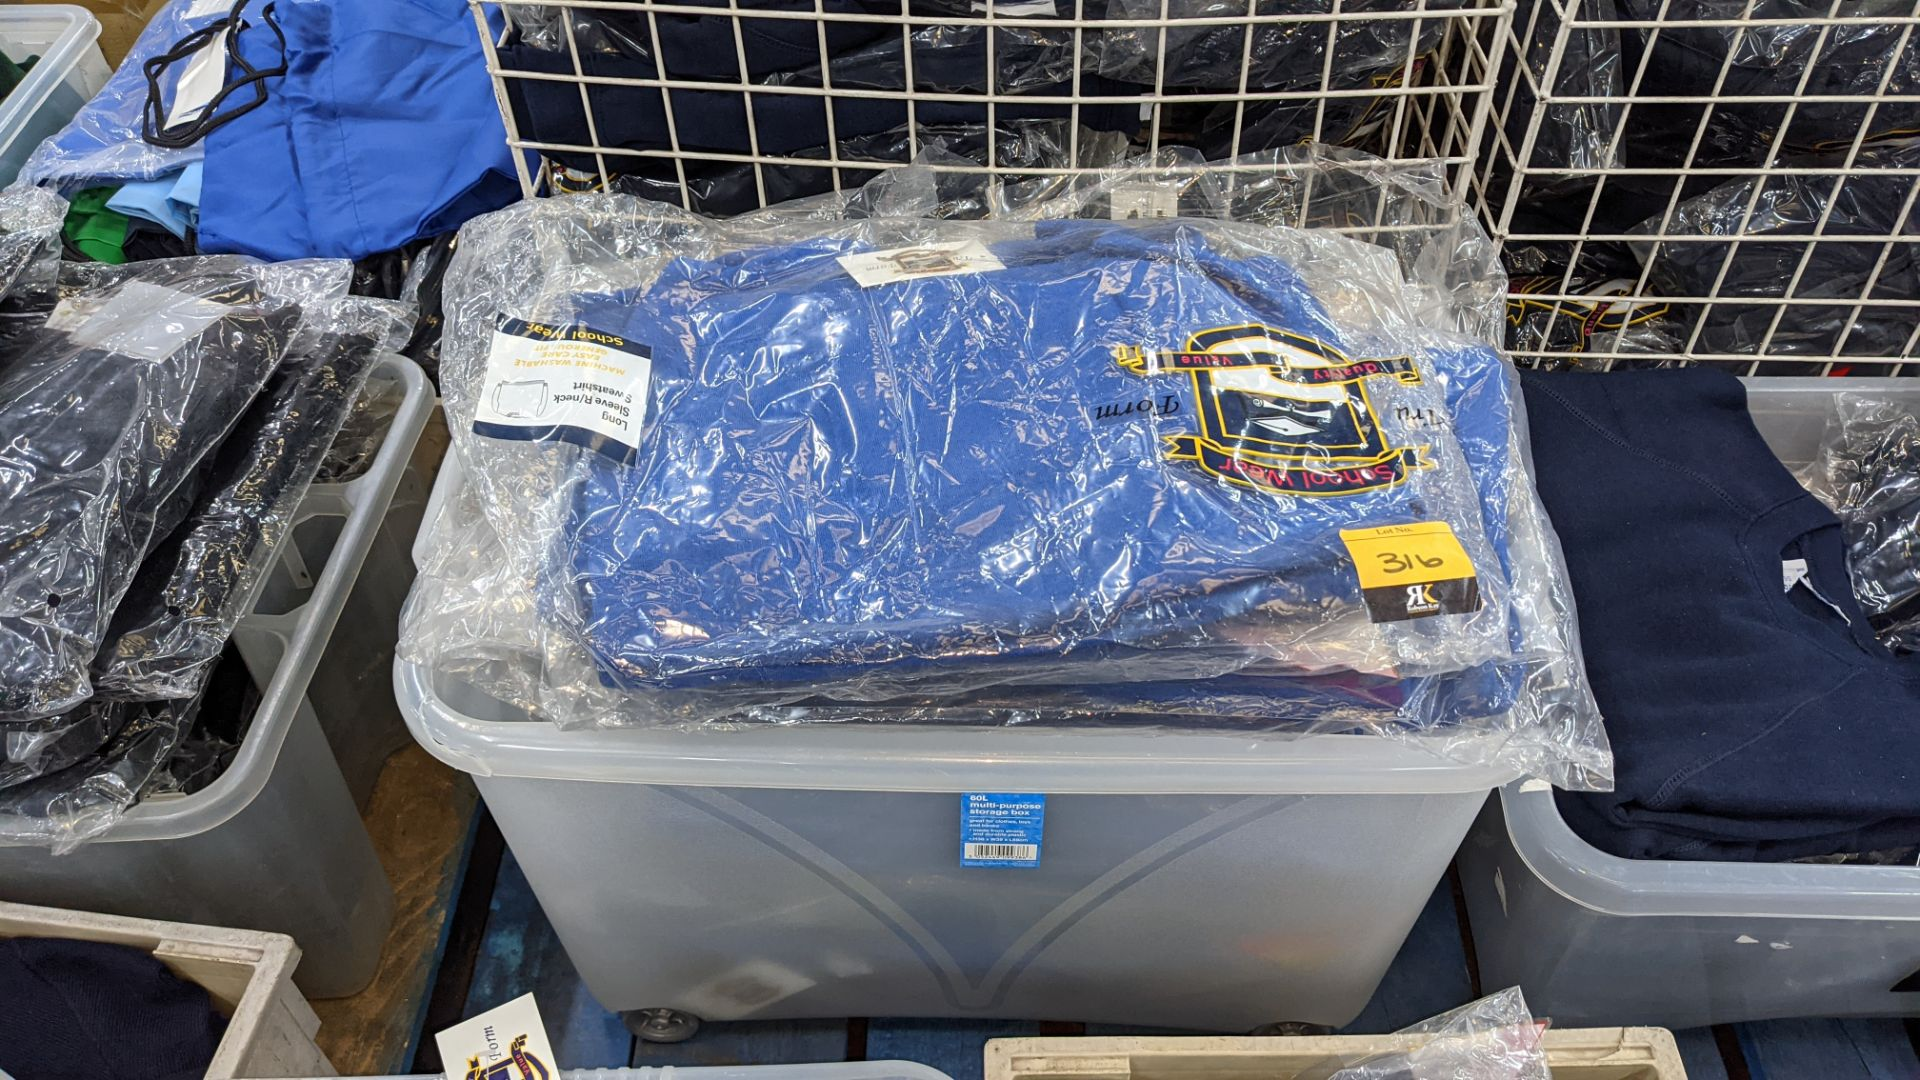 Approx 23 off blue children's sweatshirts & similar - the contents of 1 crate. NB crate excluded